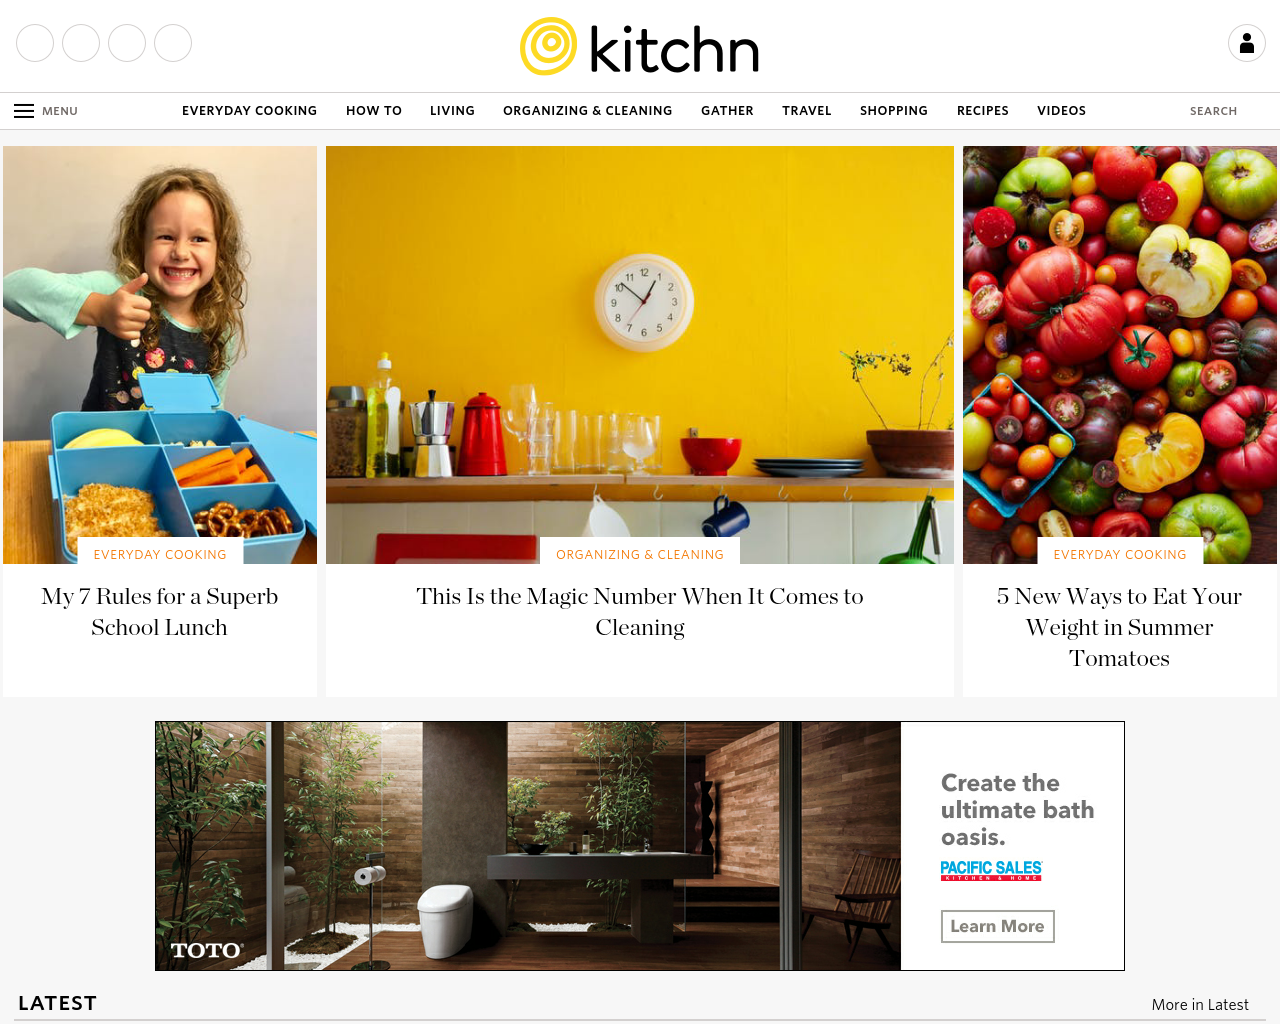 kitchn-Advertising-Reviews-Pricing